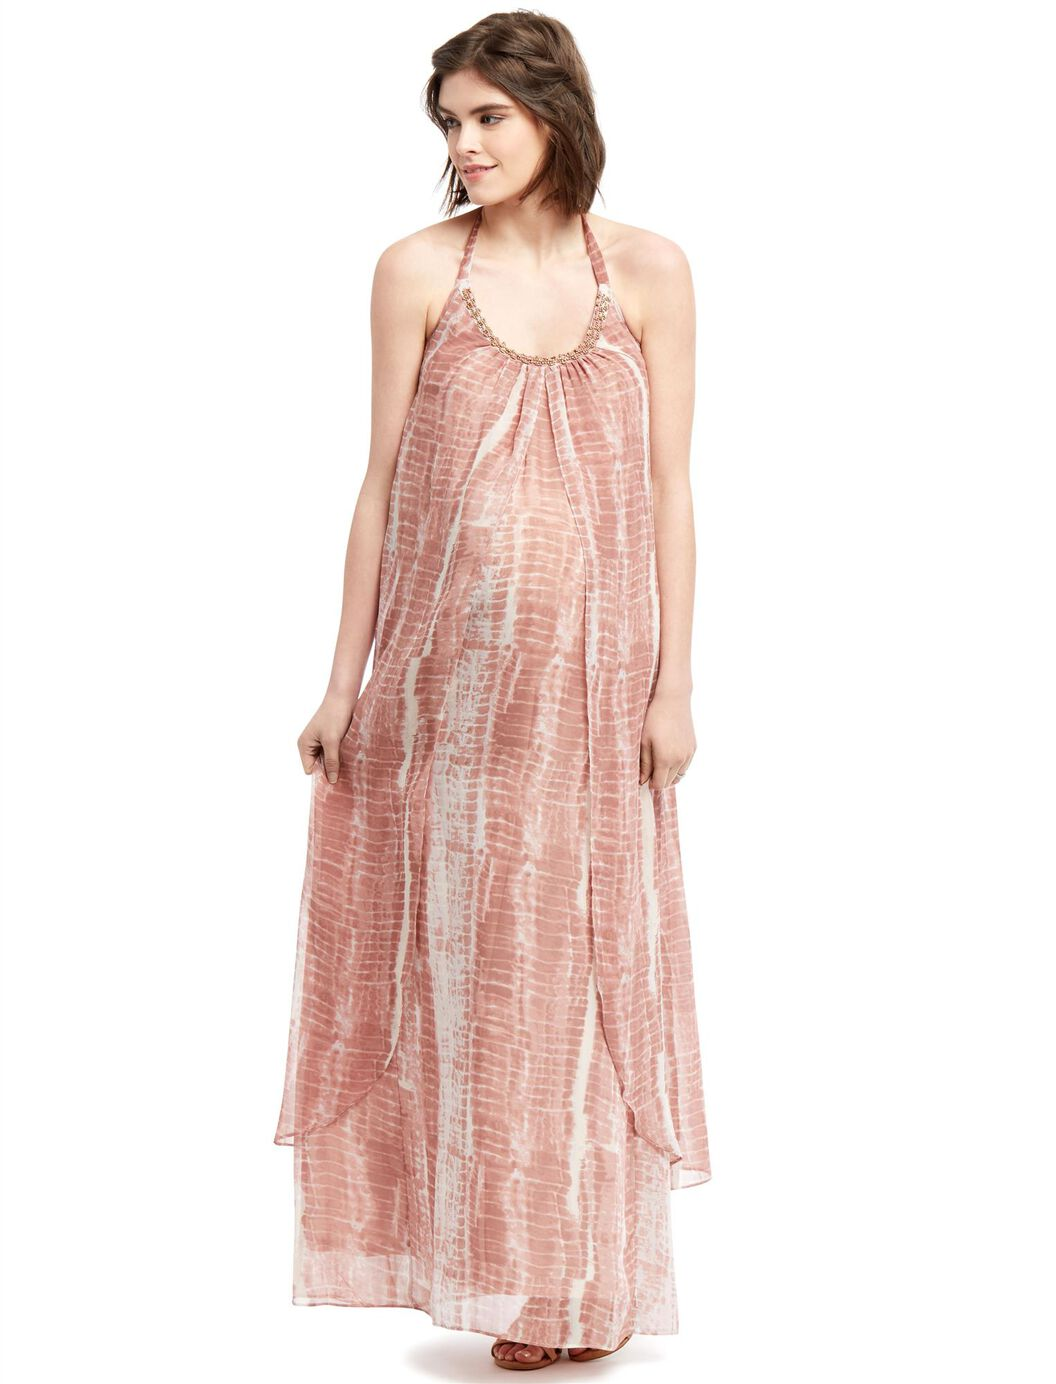 Wendy bellissimo beaded detail maternity dress motherhood maternity wendy bellissimo beaded detail maternity dress tan tie dye ombrellifo Image collections